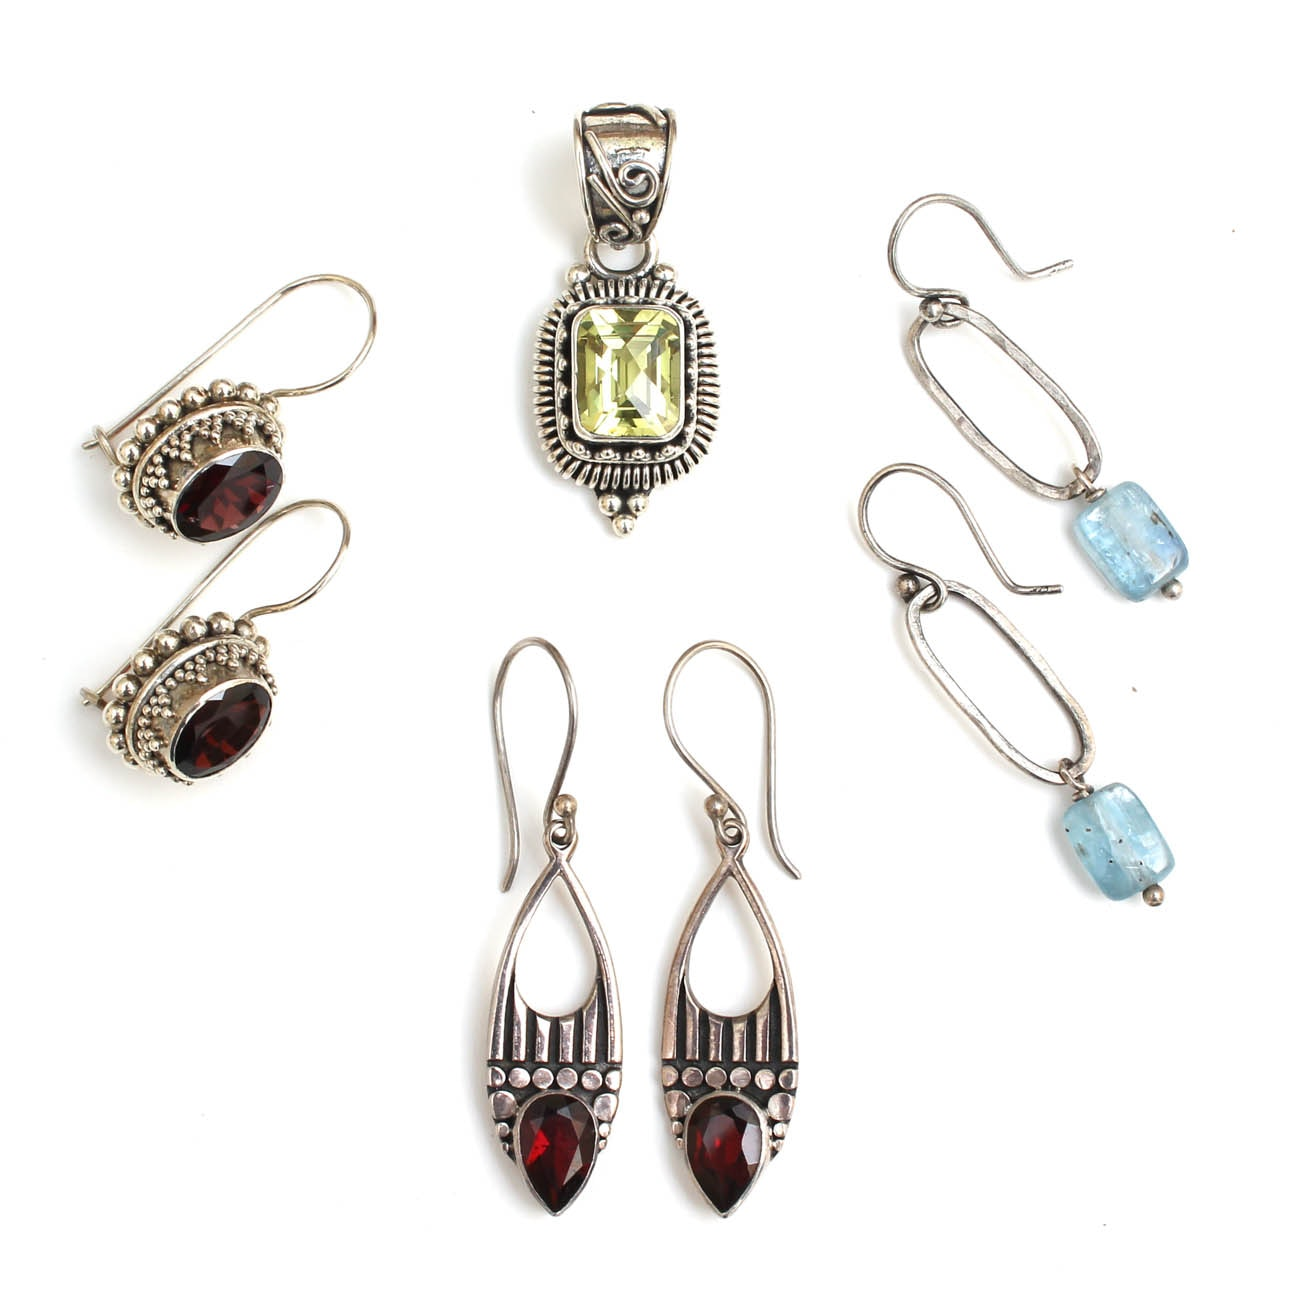 Suarti of Bali Sterling Silver Jewelry with Gemstones